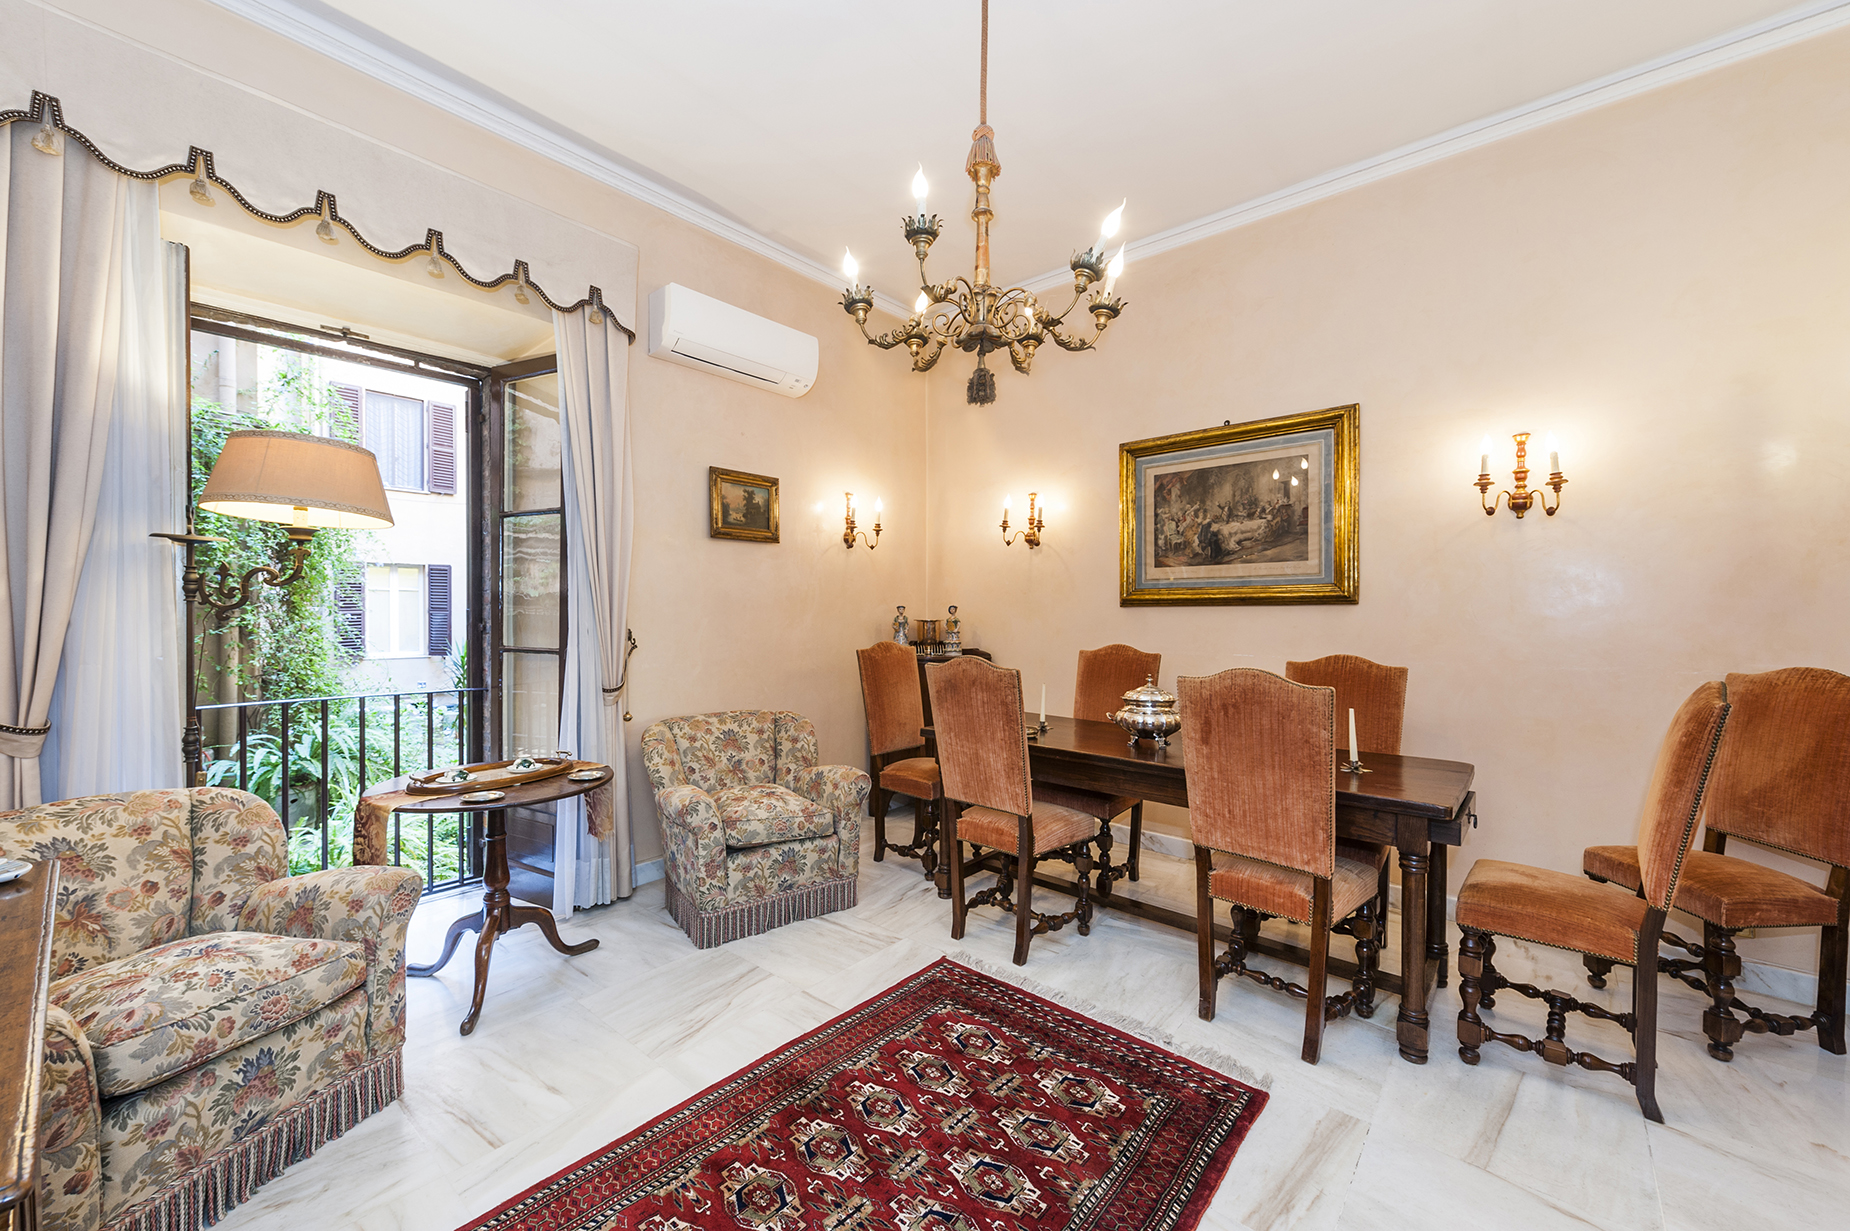 Apartamento por un Venta en Charming apartment in the heart of Rome Rome, Roma Italia